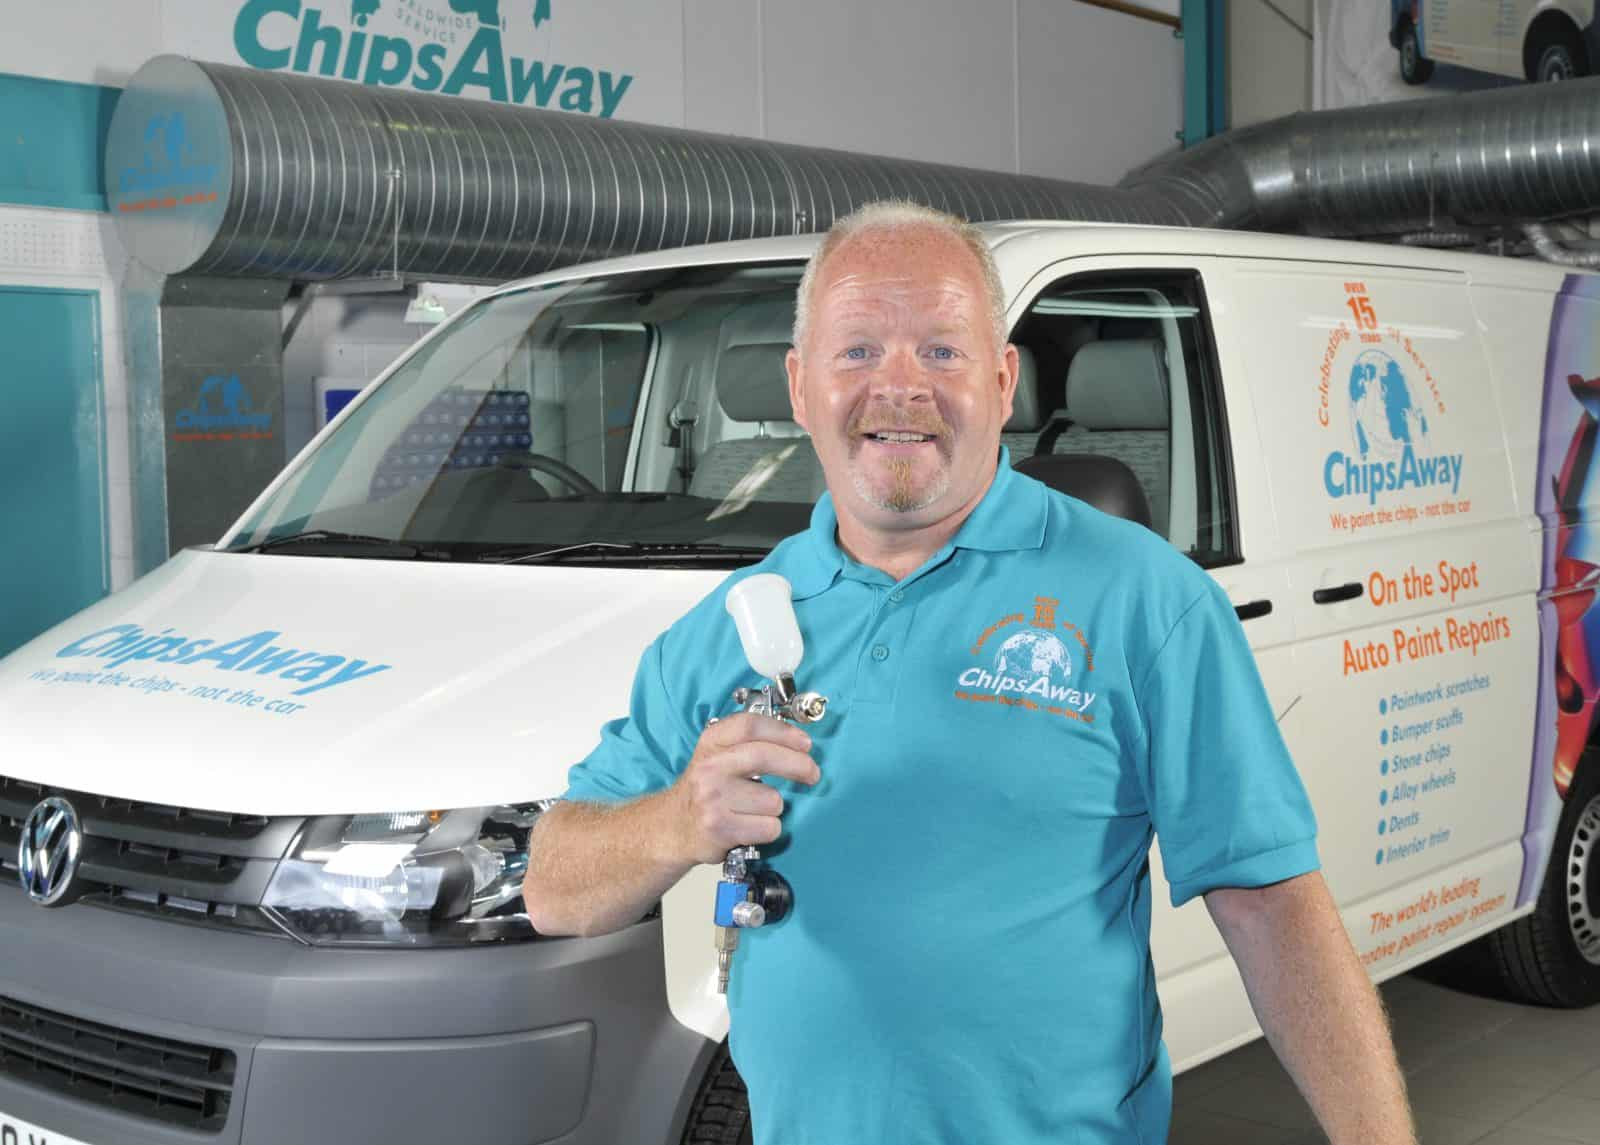 ChipsAway franchisee Alistair has sights set on the big time